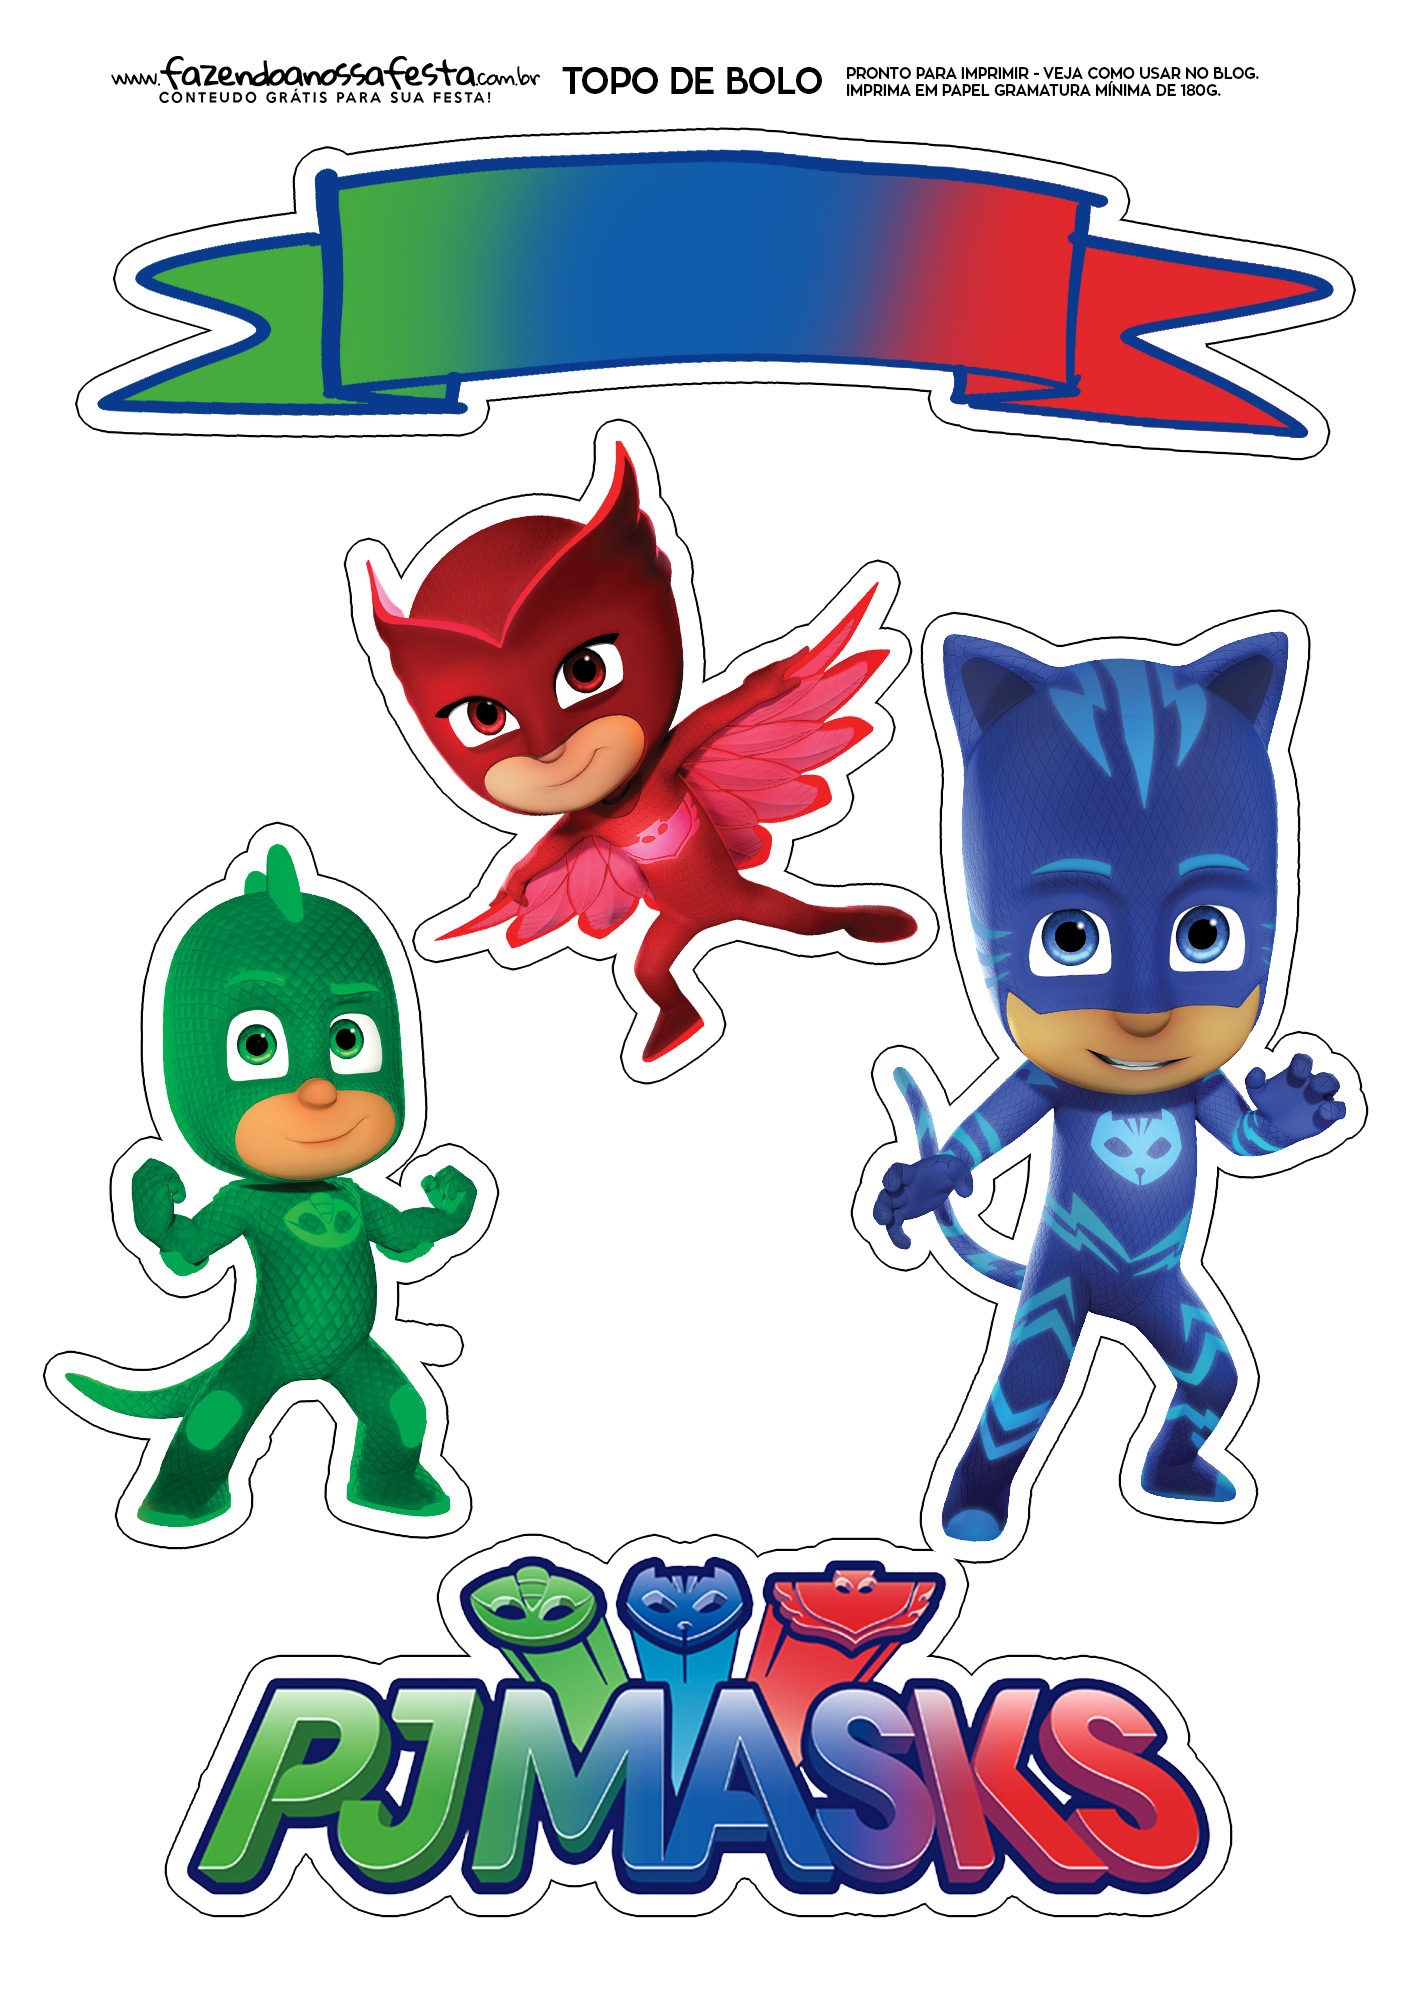 Lunch additionally Fotos Kawaii Bts furthermore Child Eve S Pudding Sponge Clip Art Wash Dishes 1539885 moreover Topo De Bolo Pj Masks together with Tt0138749. on cartoon hands